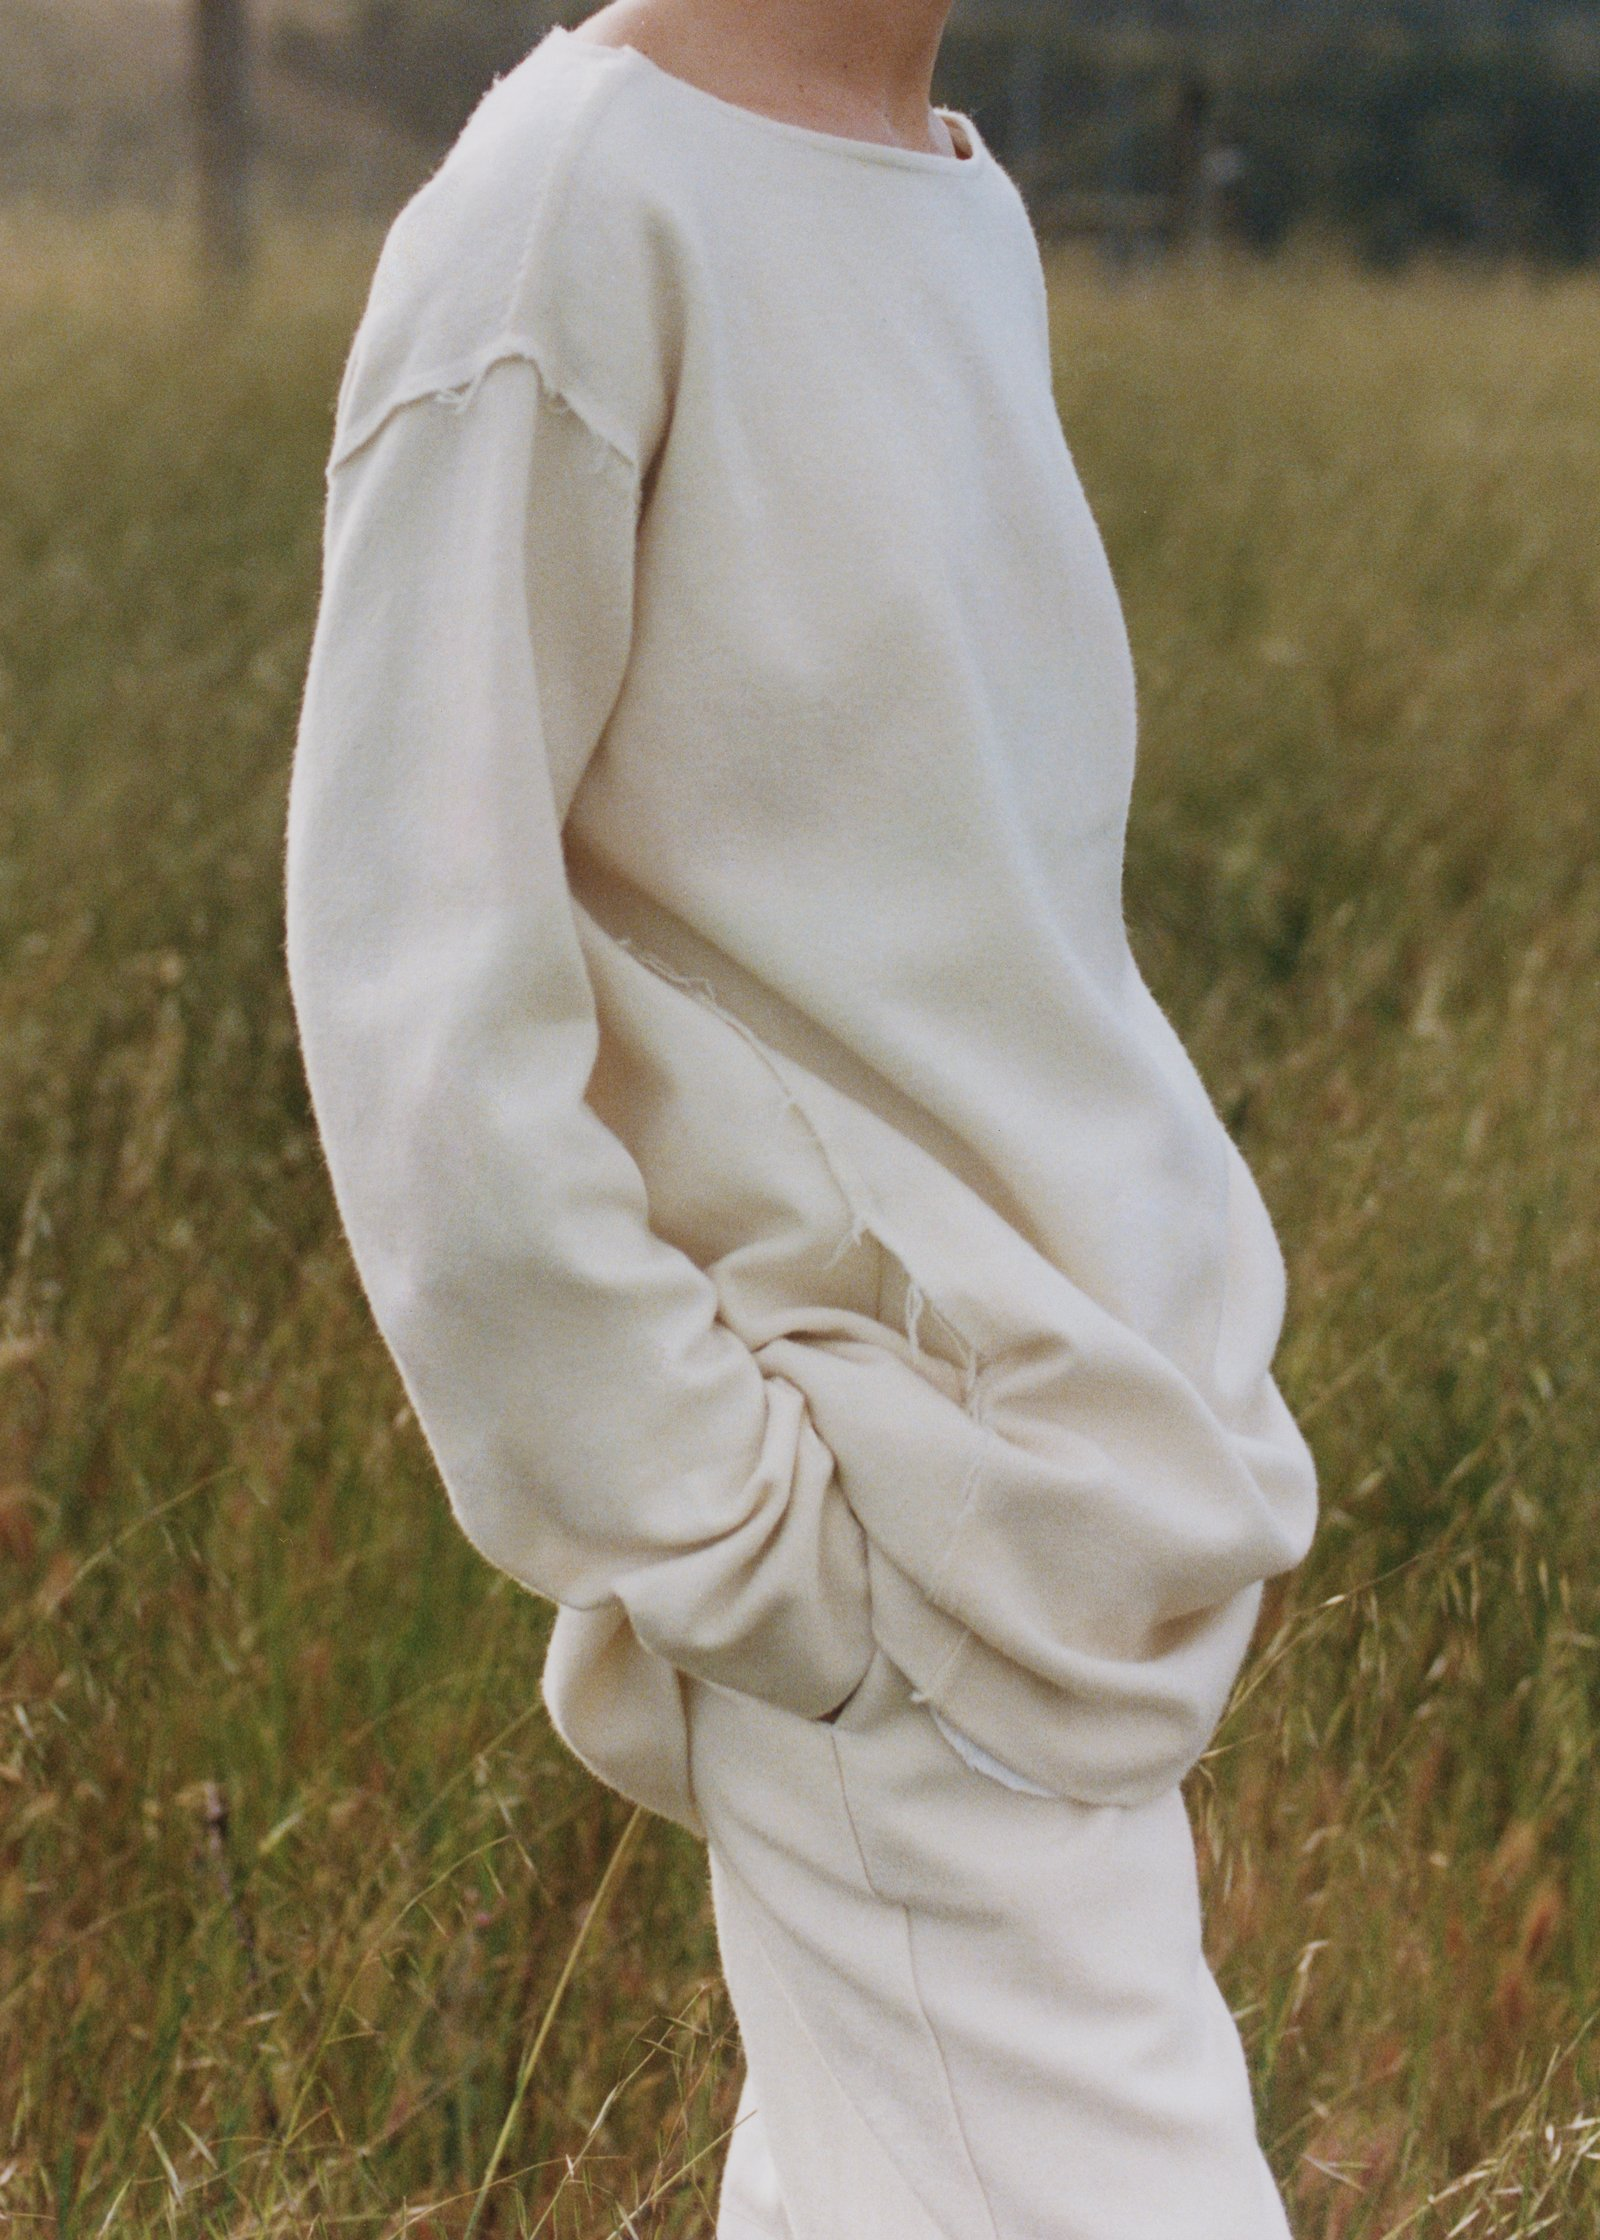 Sculptural Tunic Blouse In Climate Beneficial Wool - Natural - by Zoe Gherter for Co